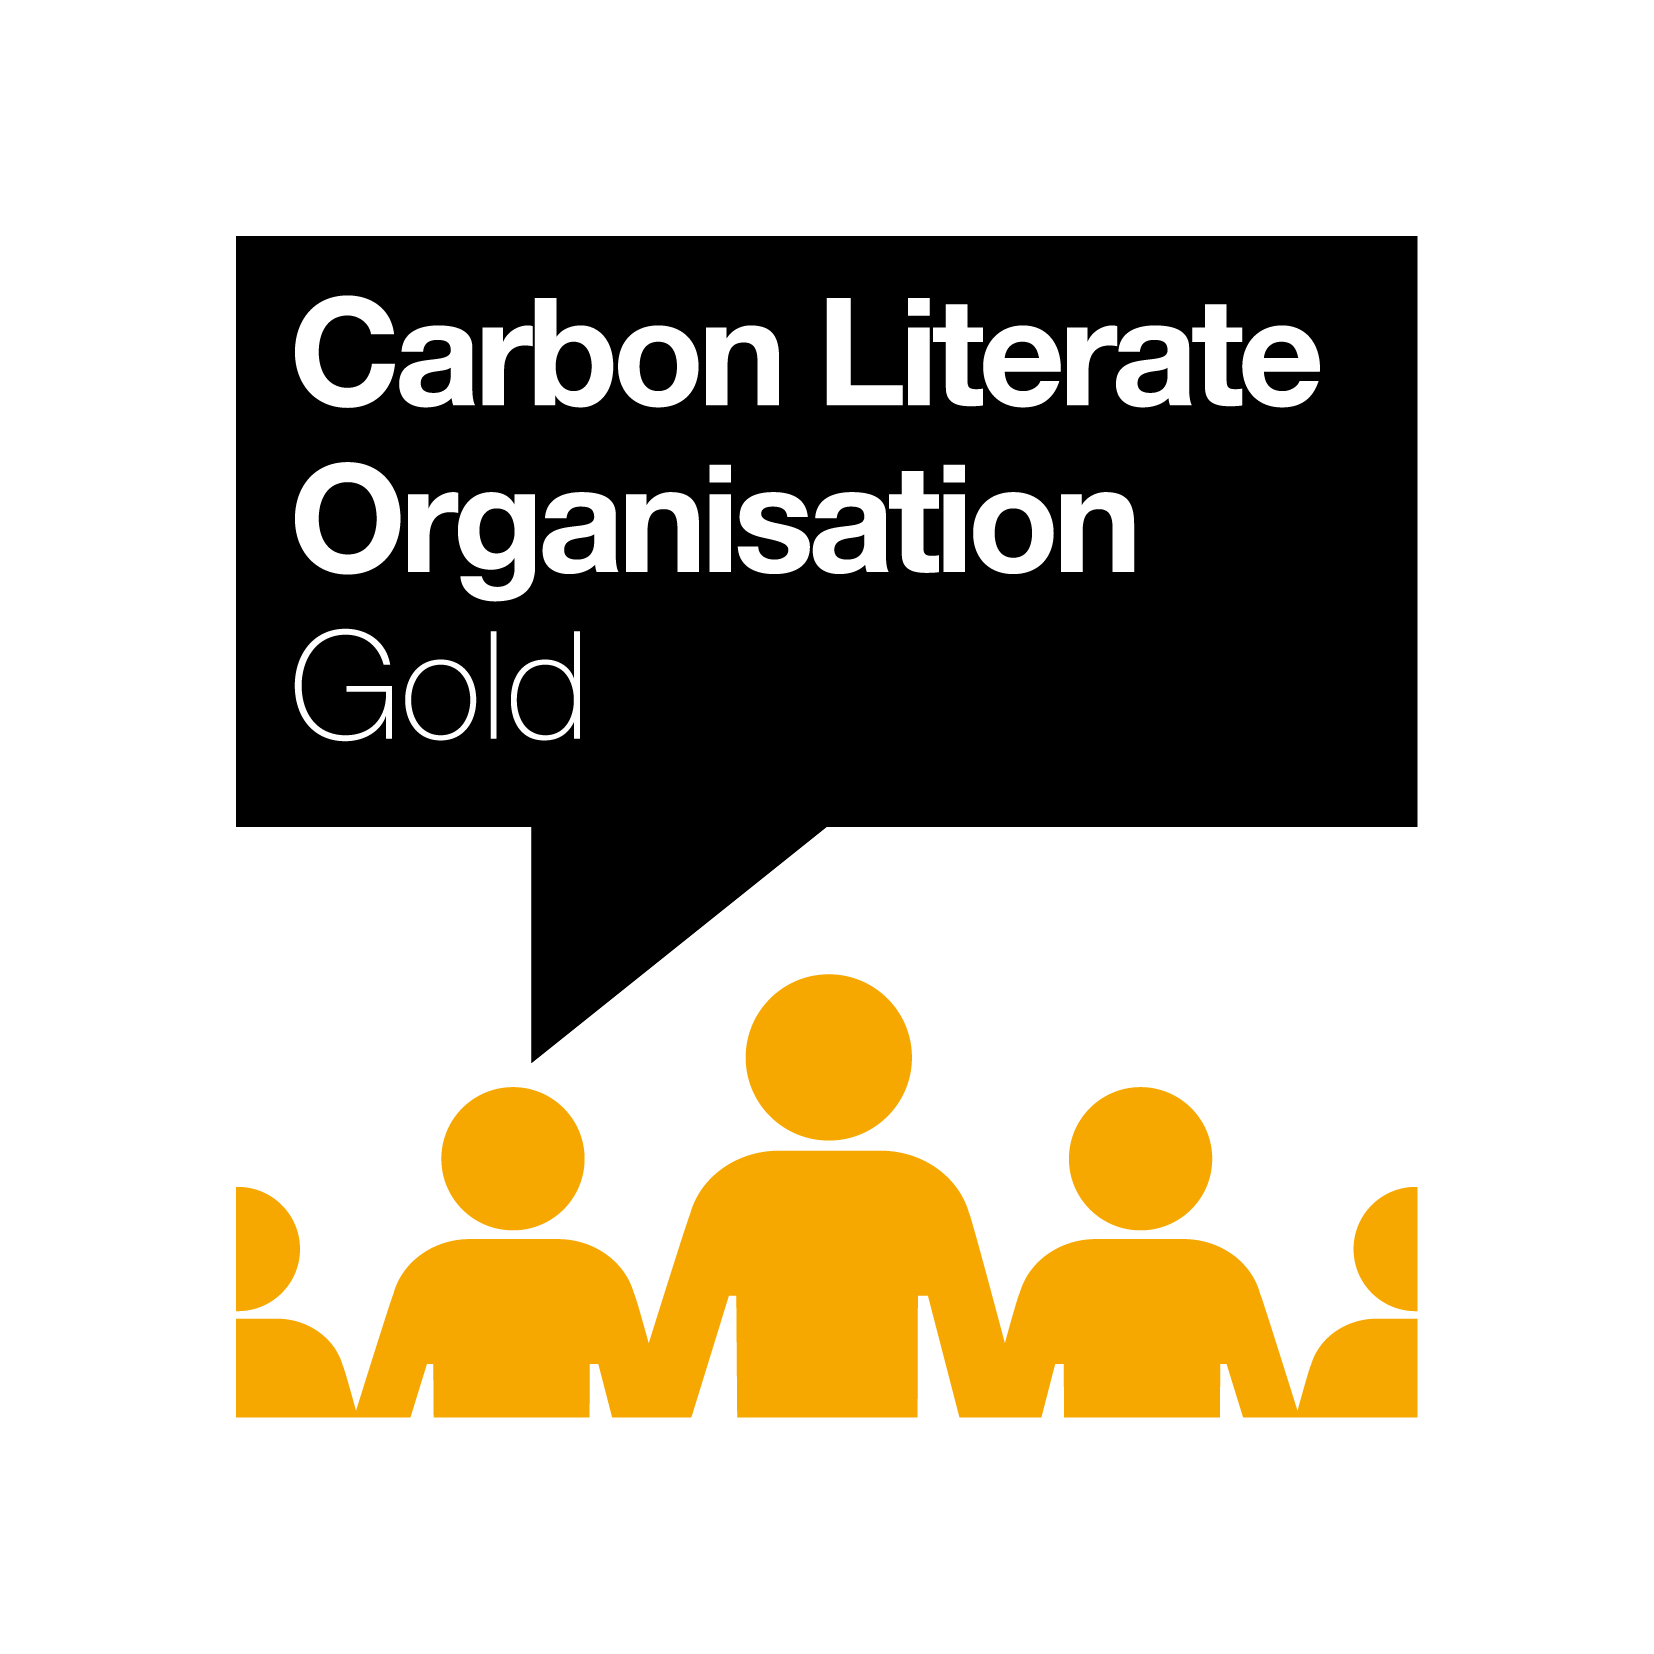 Carbon Literate Organisation (Gold) logo